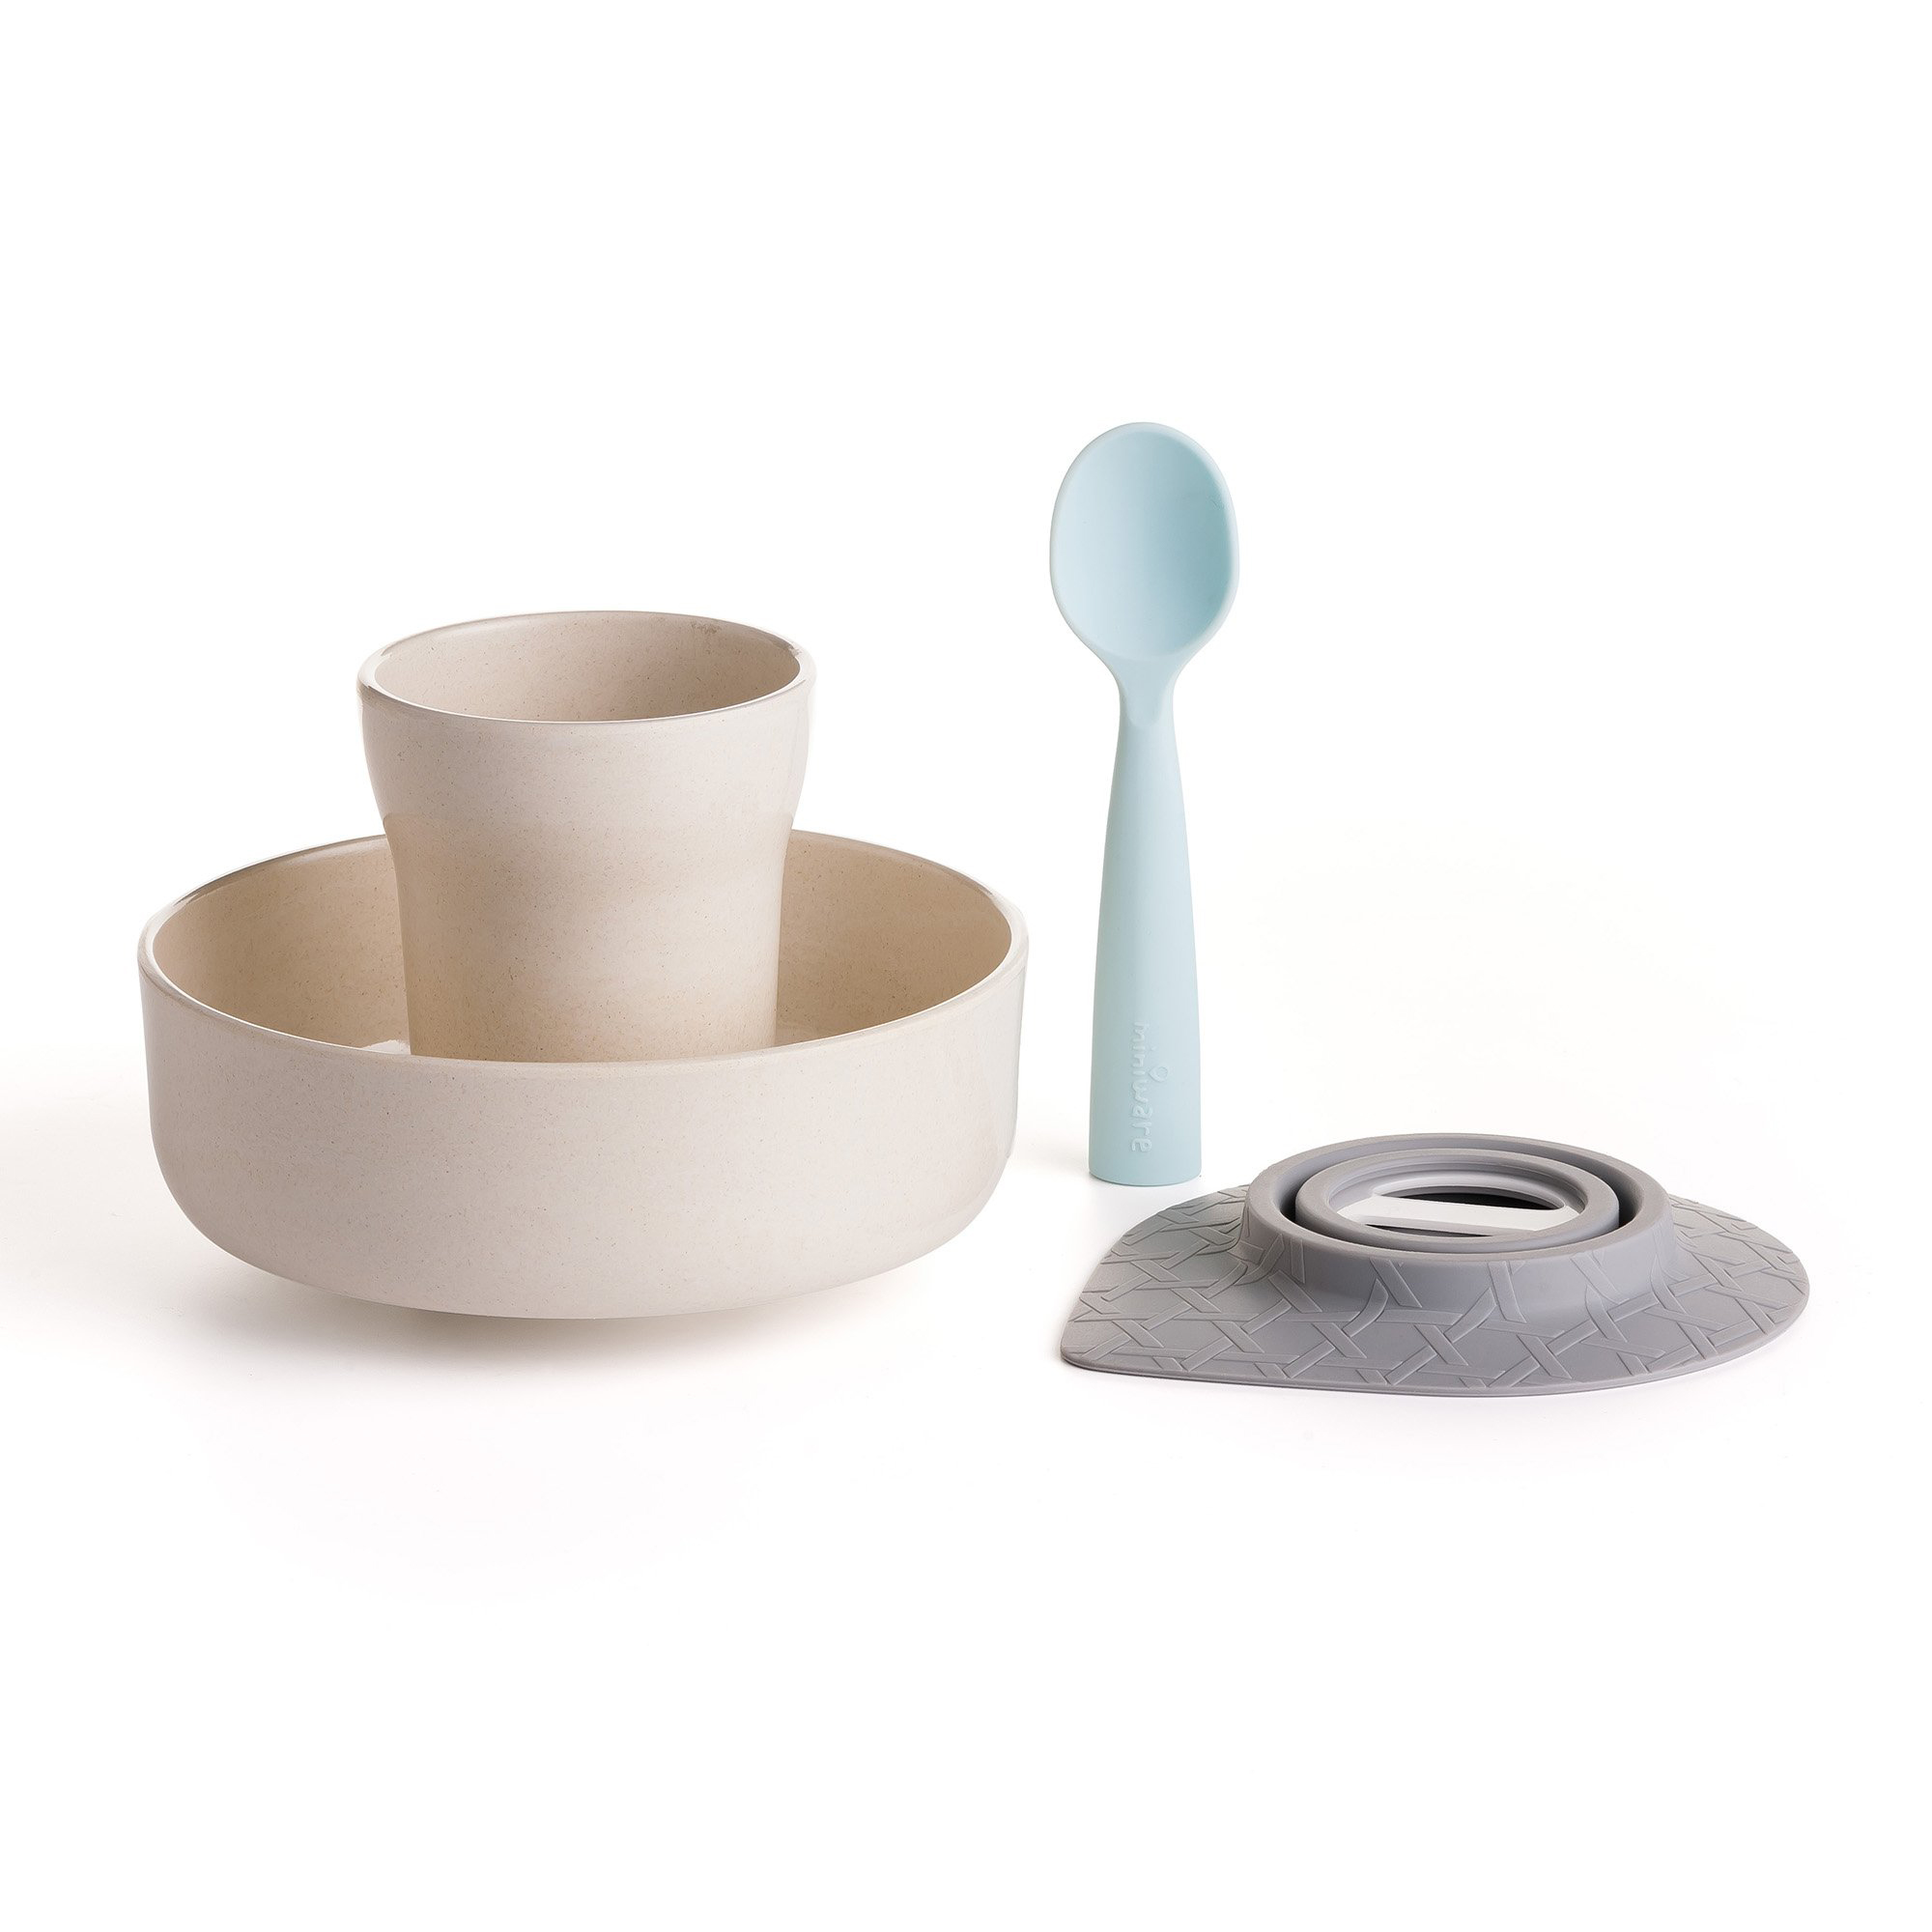 Cups, Dishes & Utensils Bowls & Plates Self-Conscious Baby Learning Dishes Spoon Fork Bowl Set Suction Cup Tableware Eating Feeding